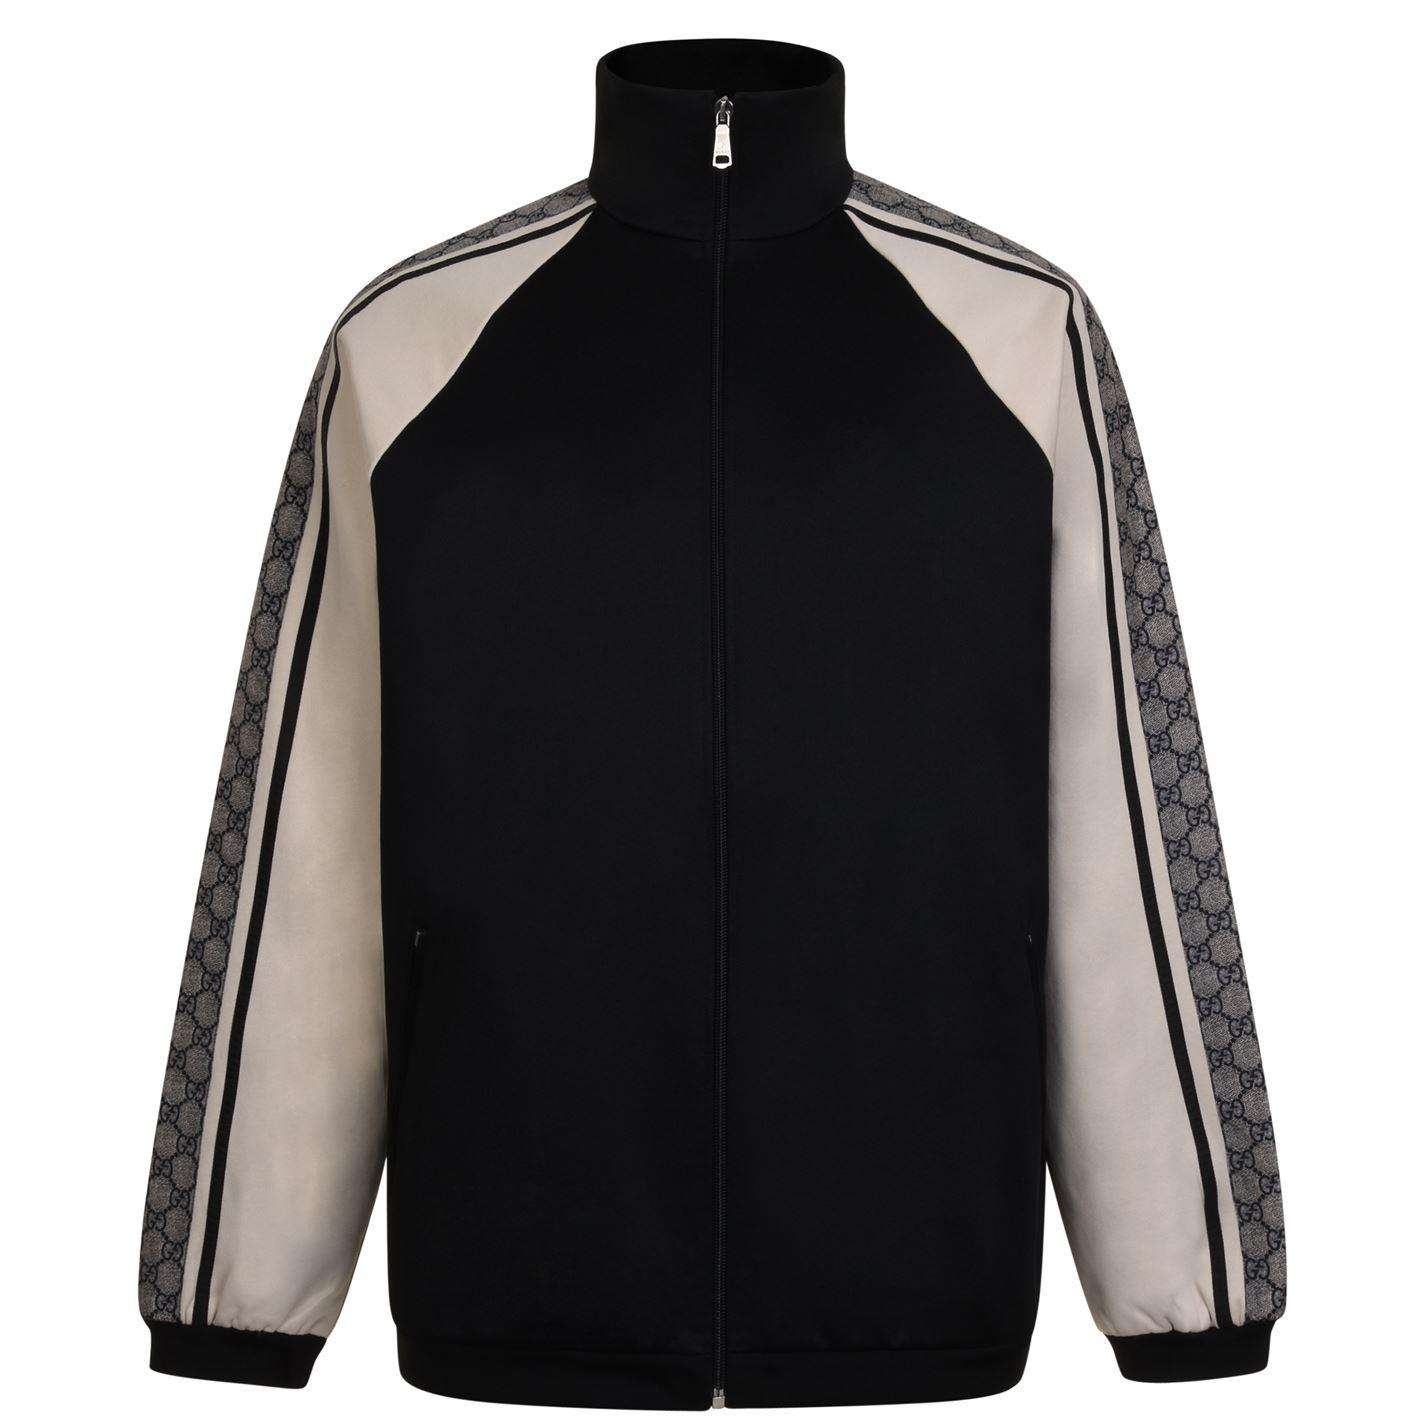 486becab176 Gucci Oversized Technical Jersey Jacket in Black for Men - Save 25 ...